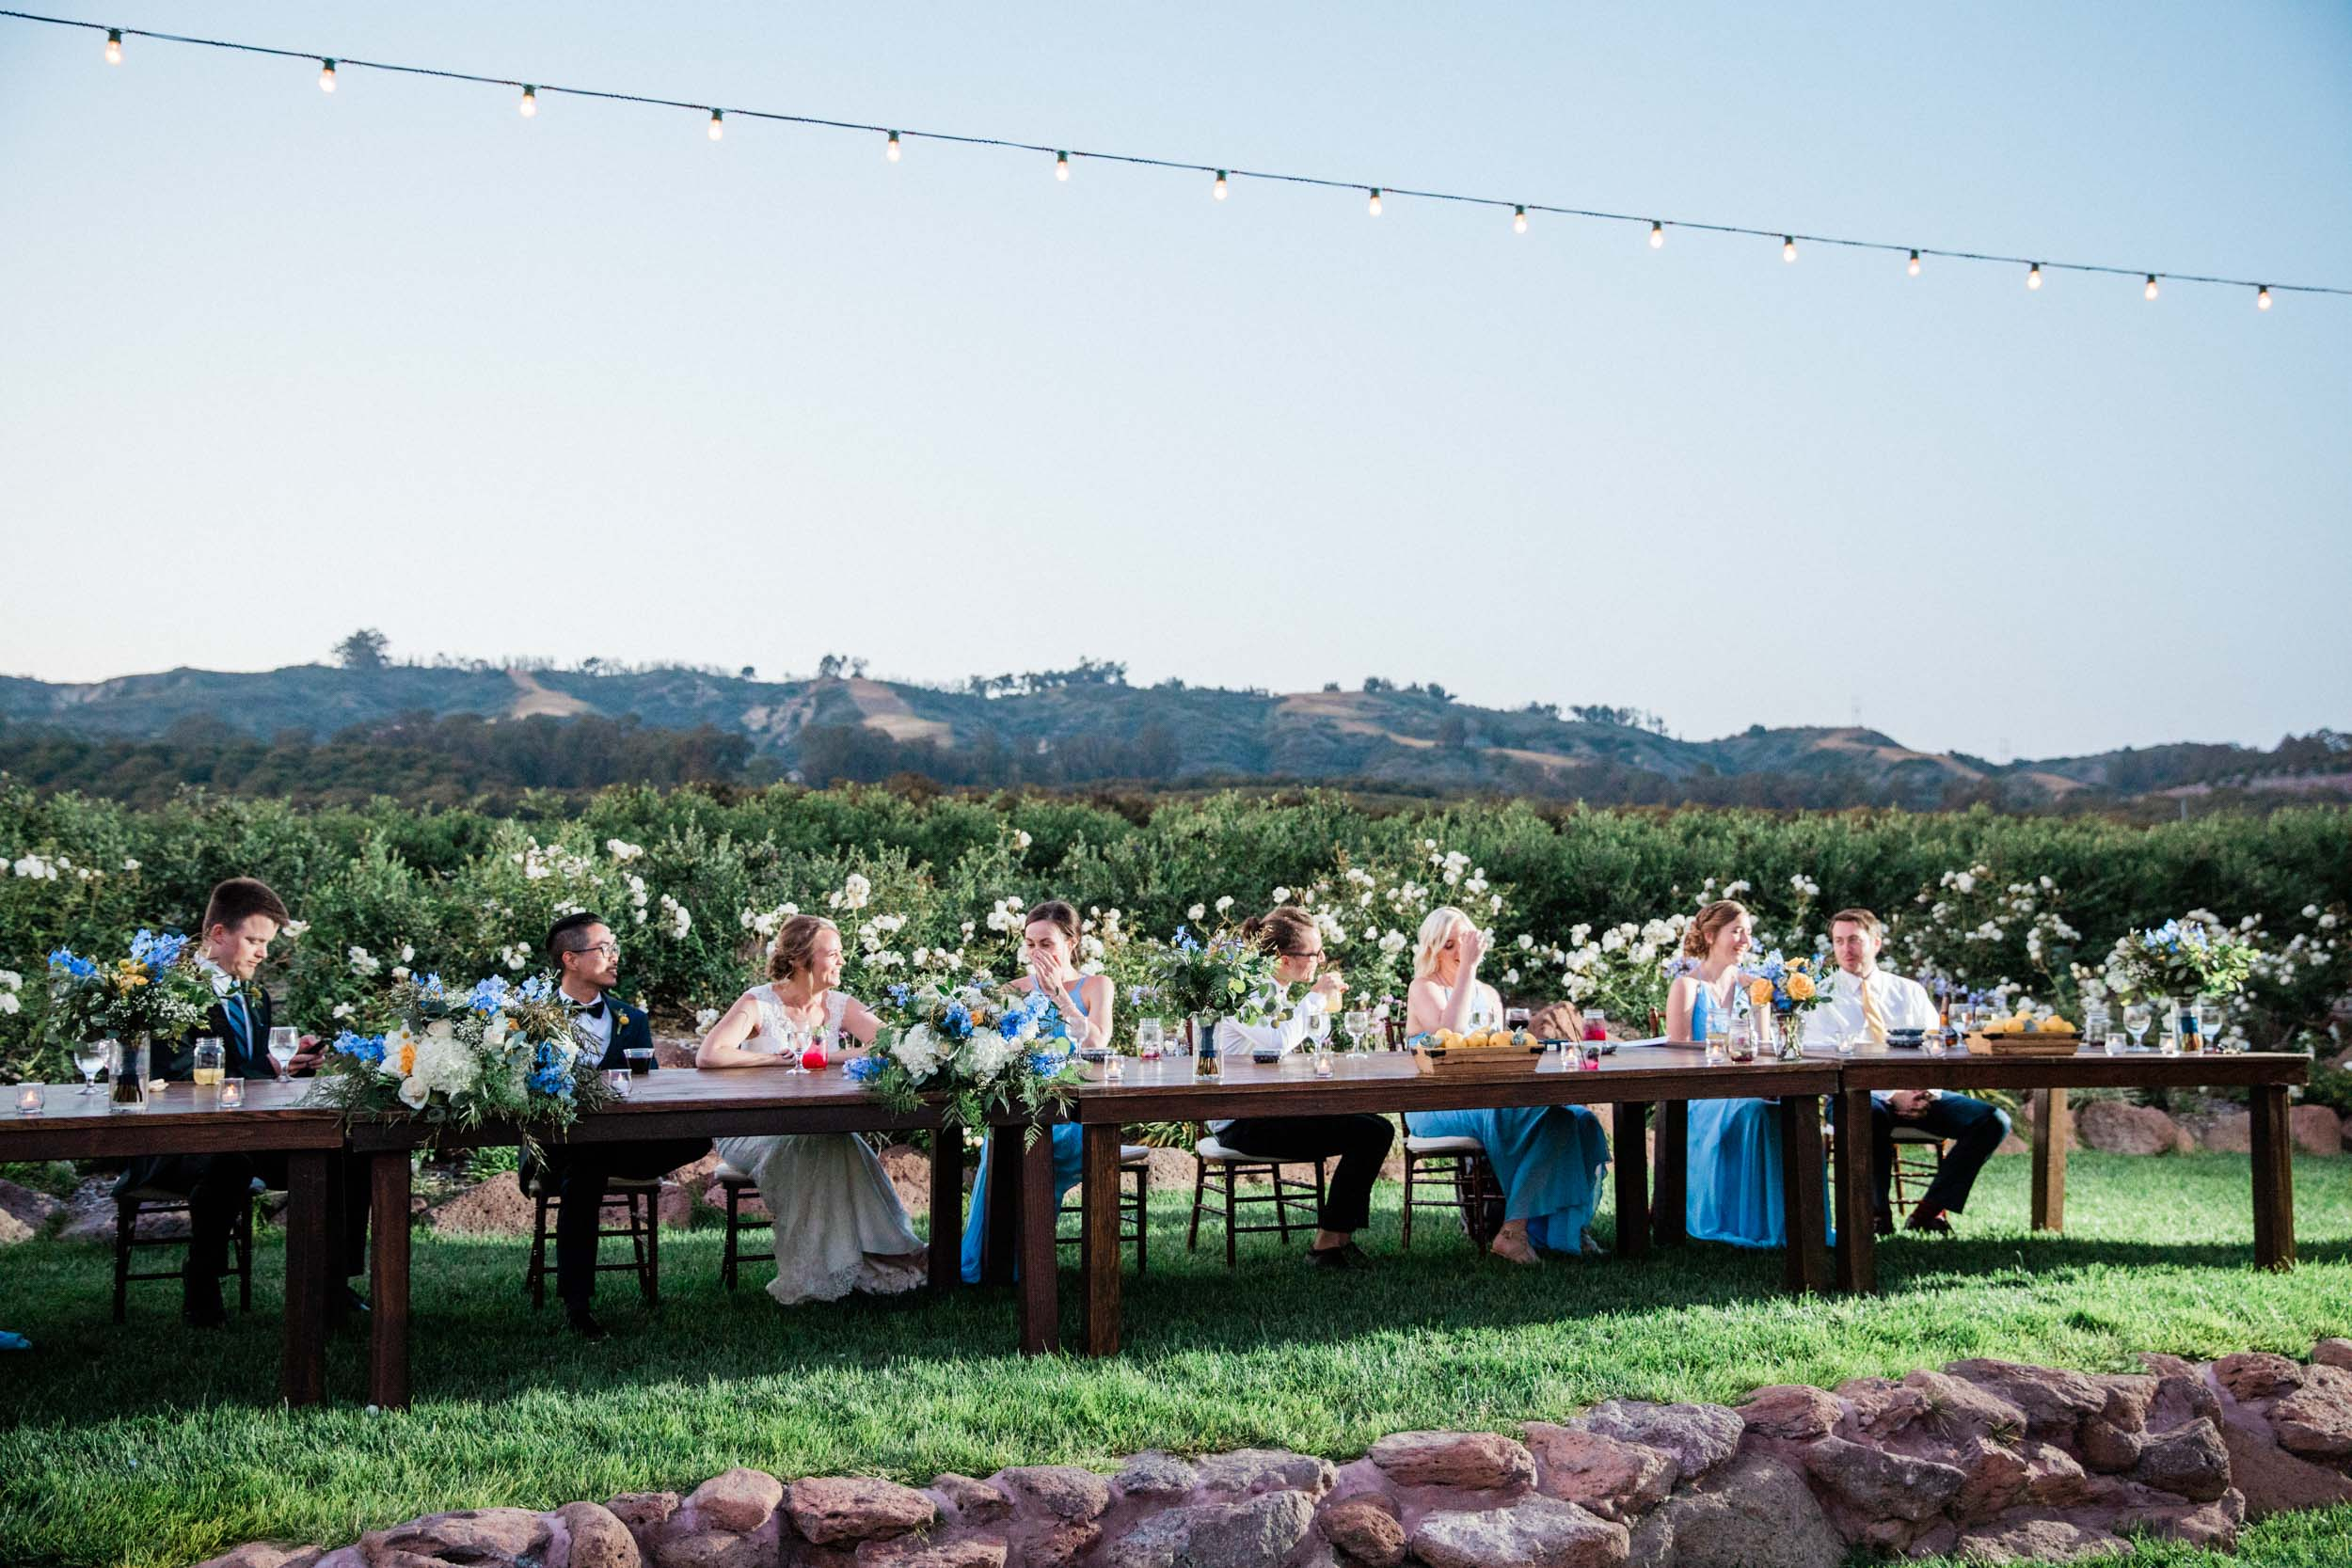 BKM-Photography-Gerry-Ranch-Southern-California-Wedding-0155.jpg